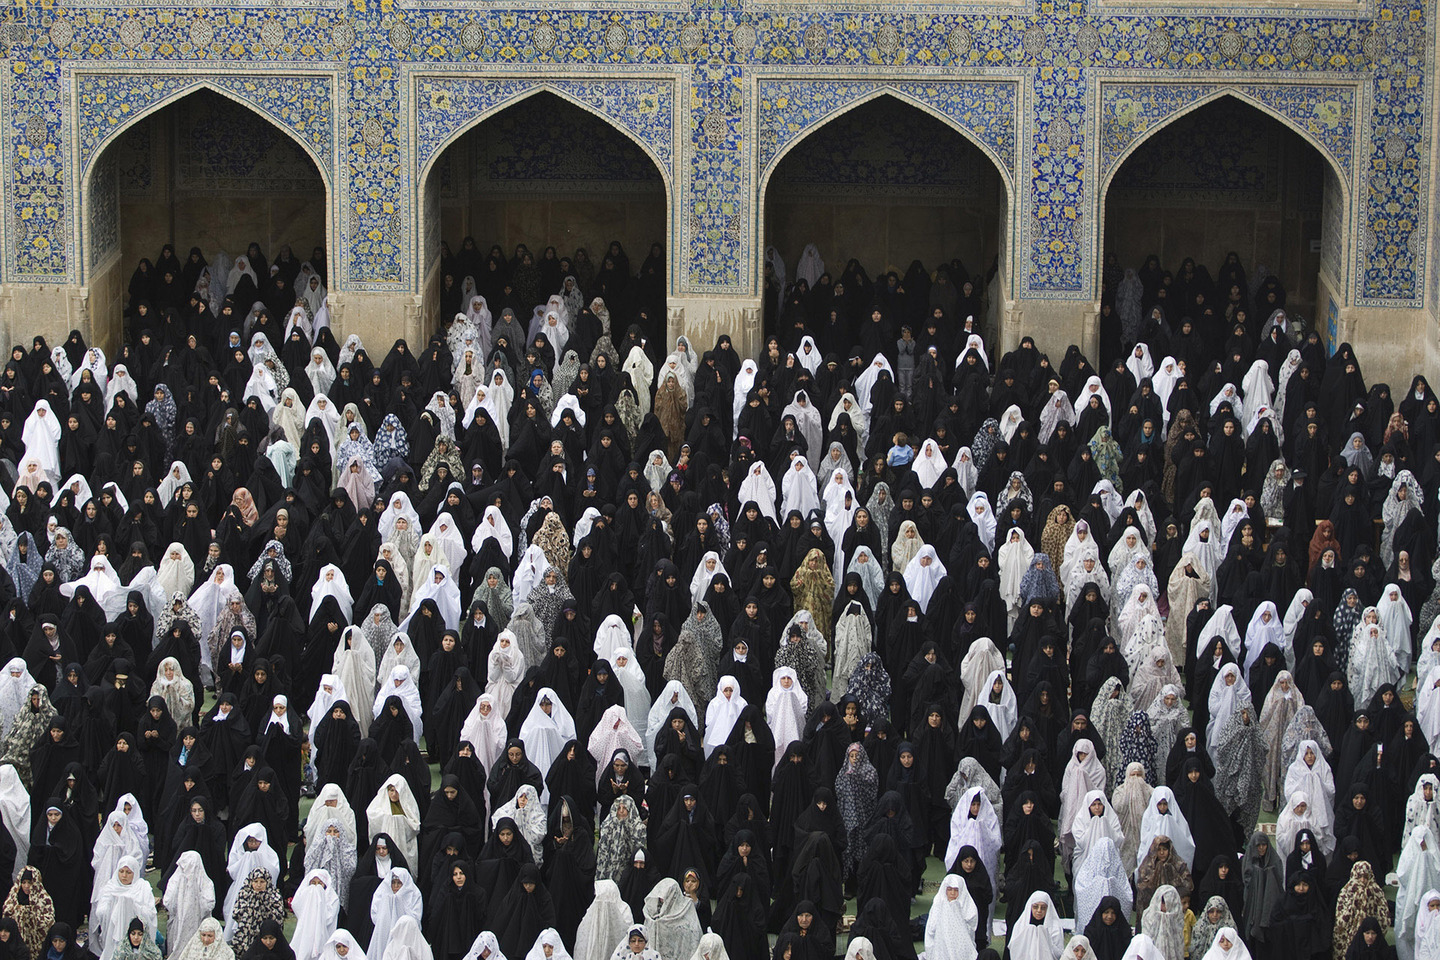 Iranian women perform their Friday prayer at the Imam mosque